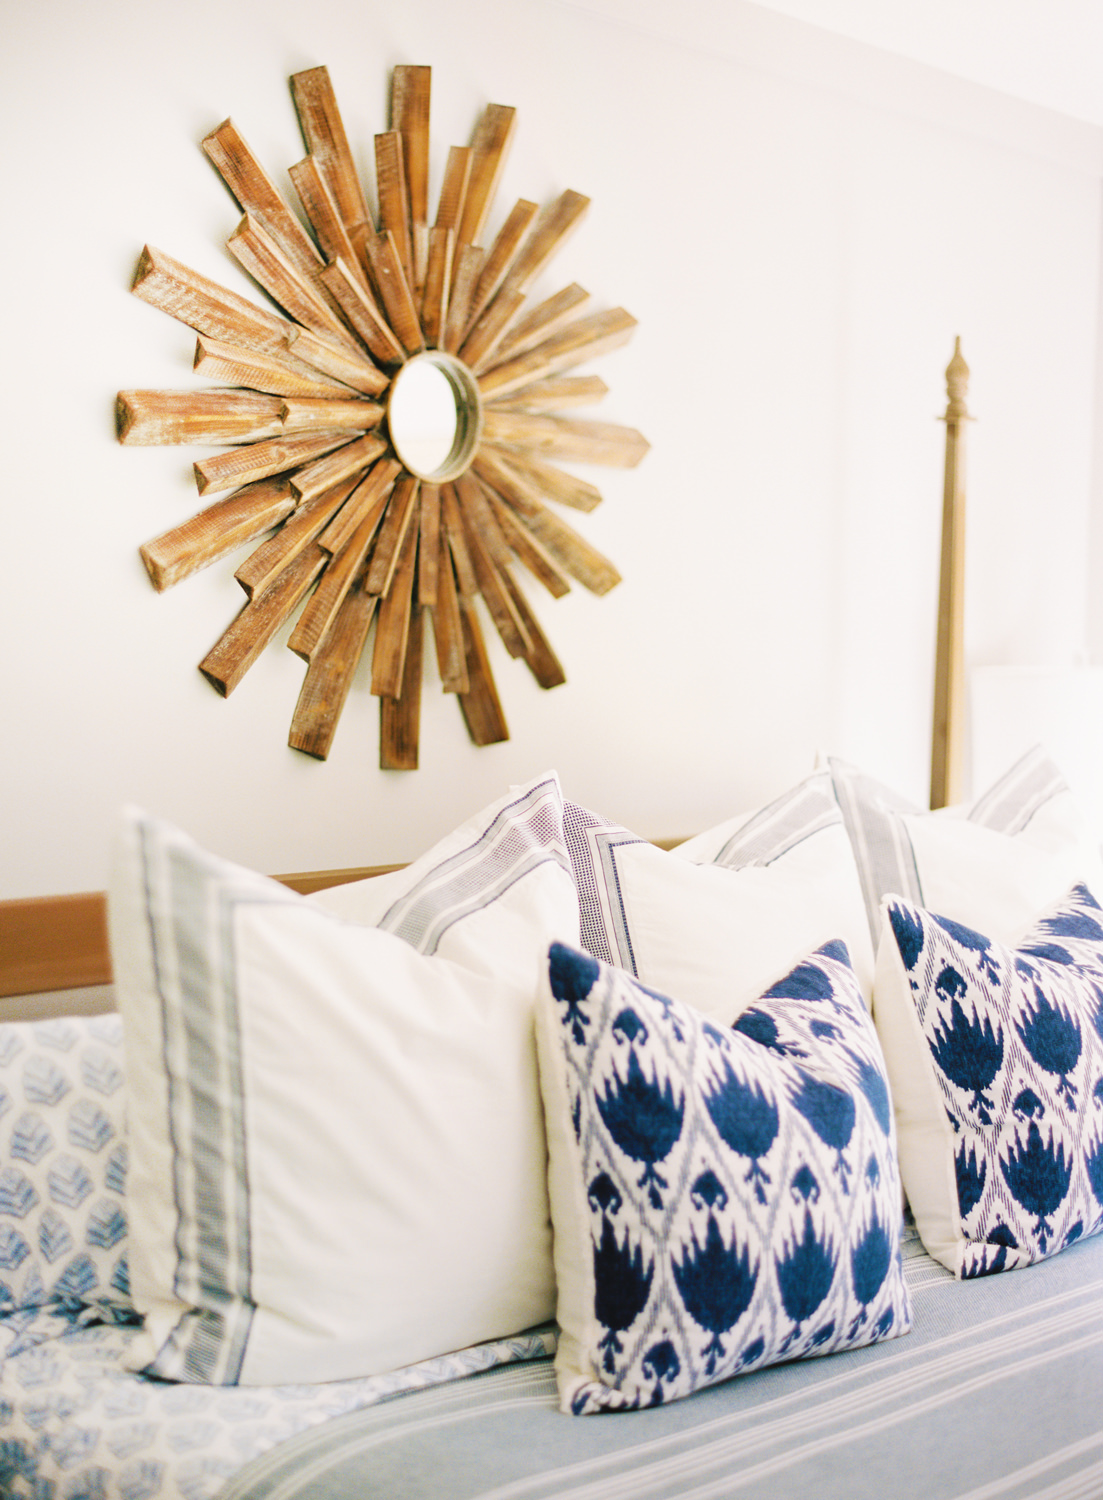 cottrell_photography_interiors-005